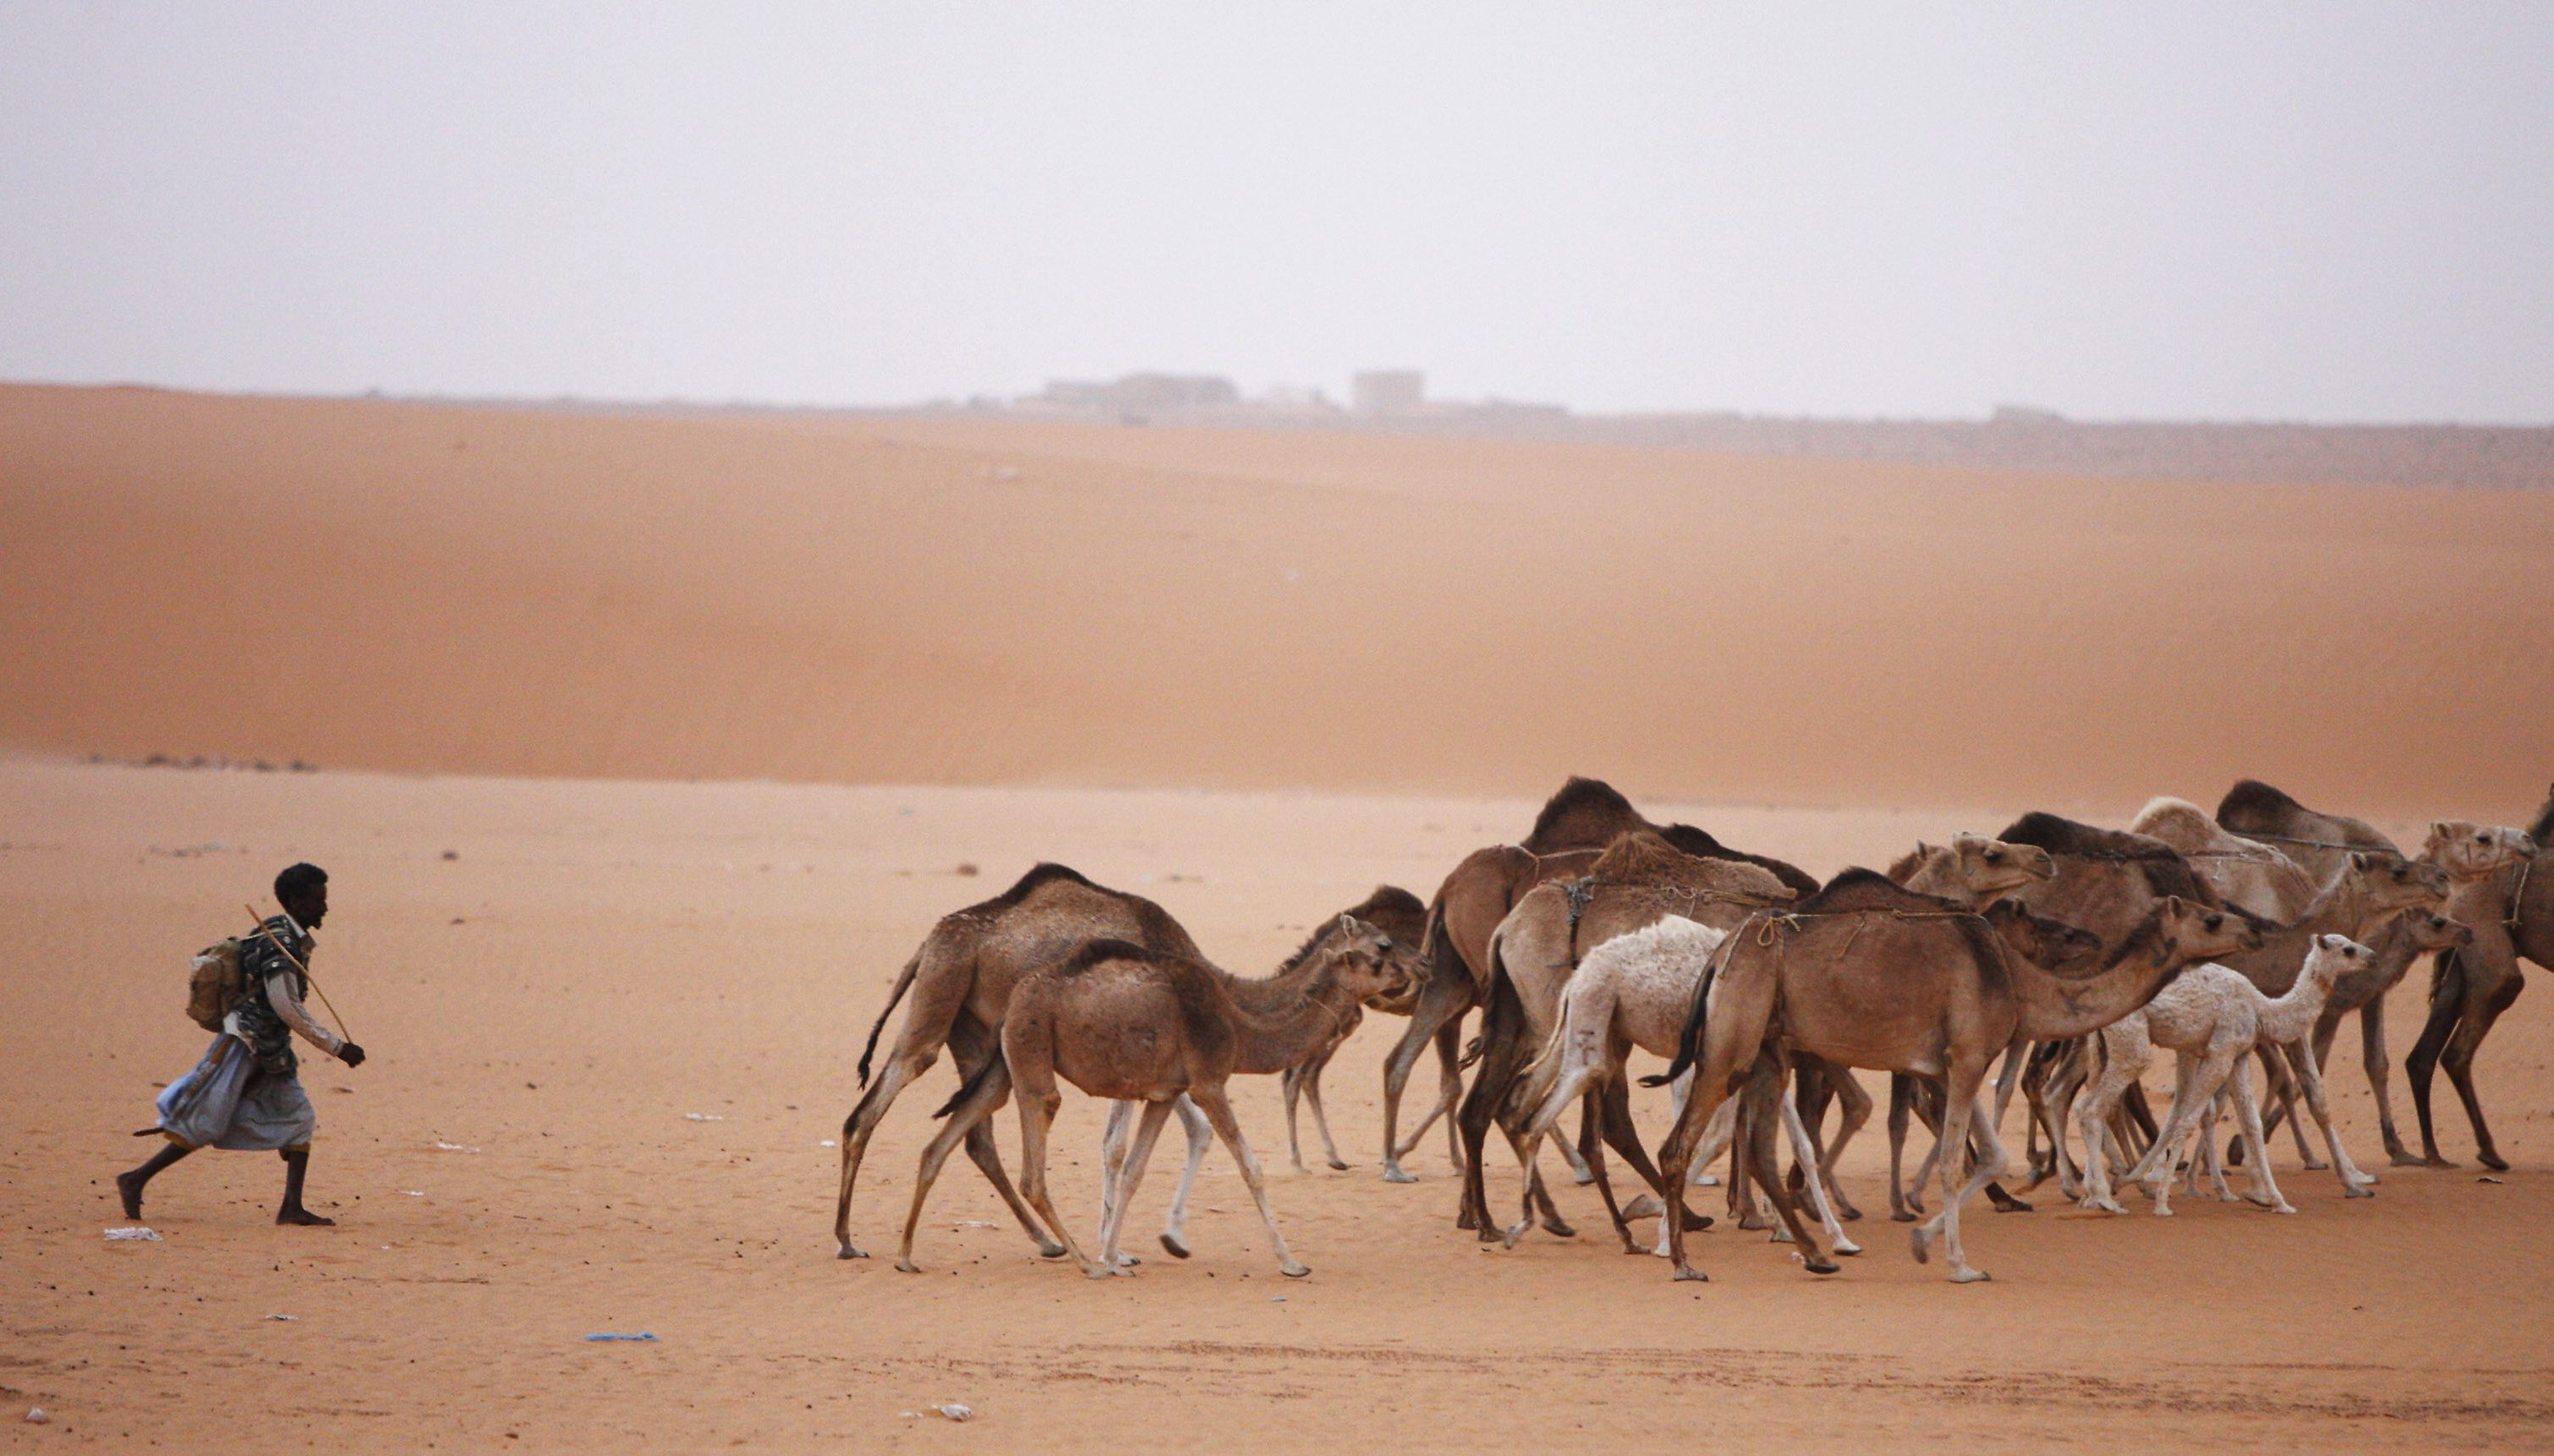 A Mauritanian man herds camels near the ancient desert town of Changuetti, 500 km (300 miles) northeast of the capital Nouakchott in this March 10, 2007 picture. Herding camels or goats out in the sun-blasted dunes of the Sahara, or serving hot mint tea to guests in the richly carpeted villas of Nouakchott, Mauritanian slaves serve their masters and are passed on as family chattels from generation to generation. Picture taken March 10, 2007. To match feature SLAVERY-MAURITANIA/